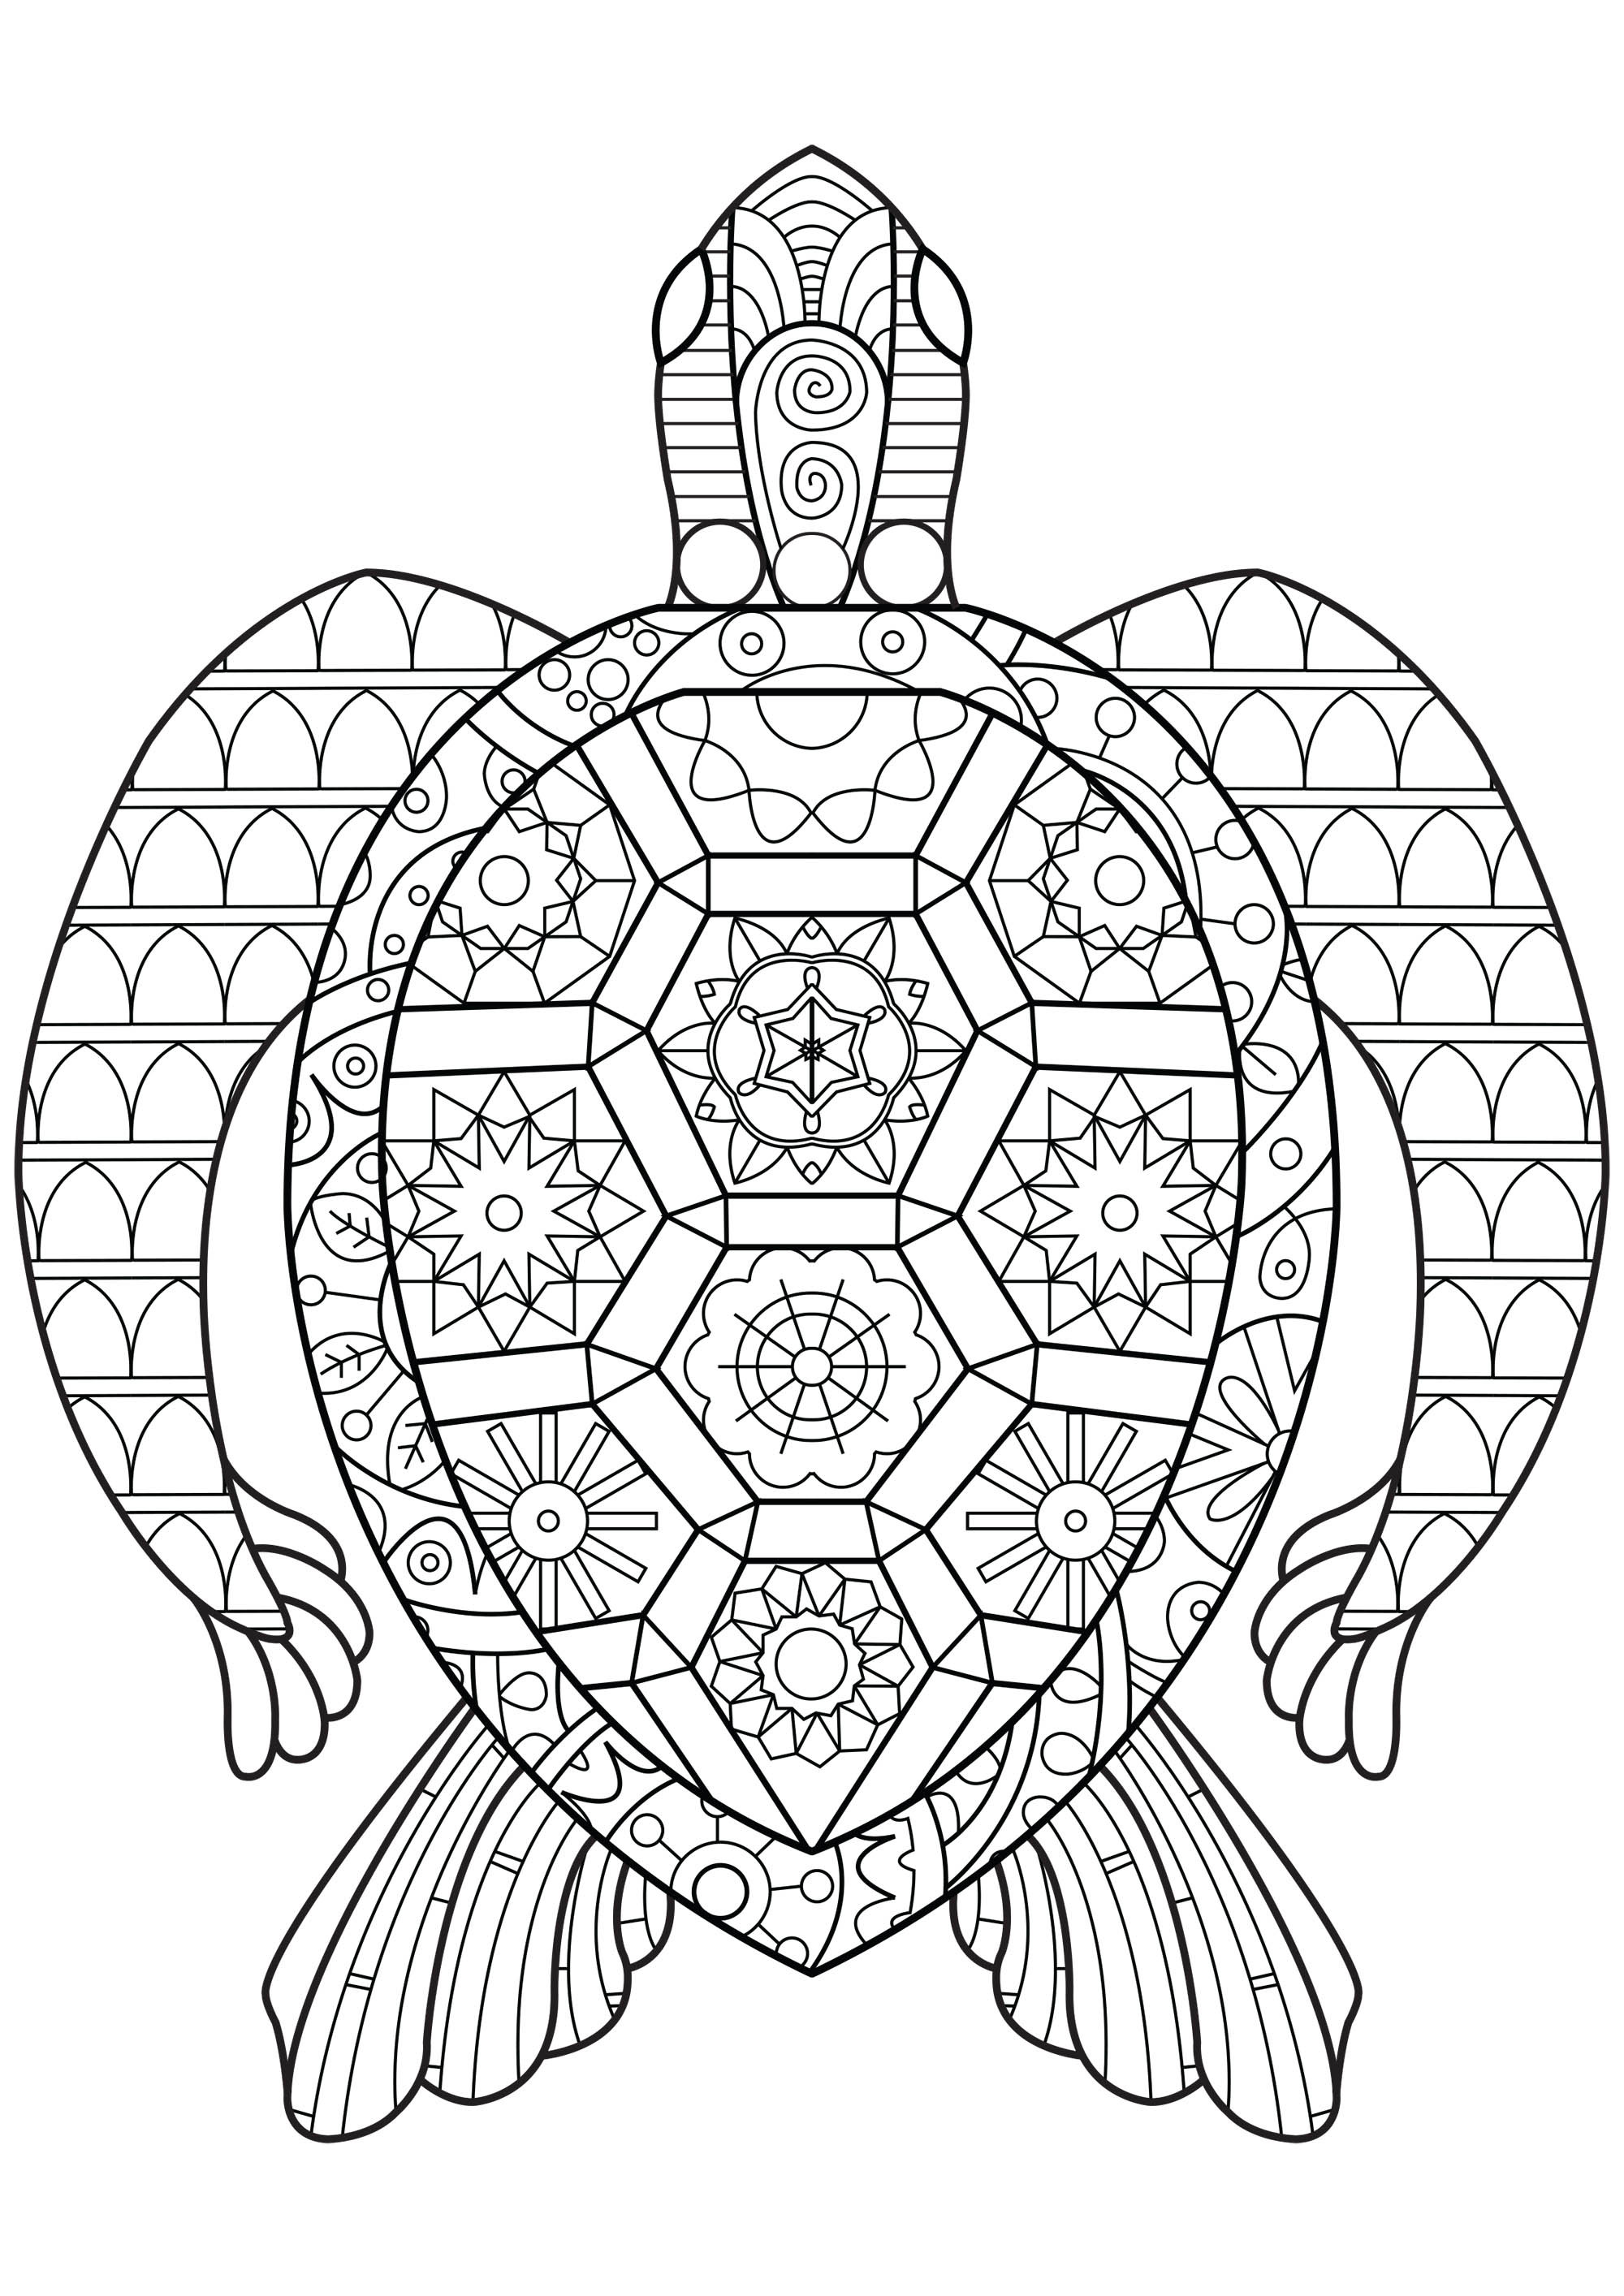 Best ideas about Turtle Coloring Pages For Adults . Save or Pin Zen Turtle Turtles Adult Coloring Pages Now.